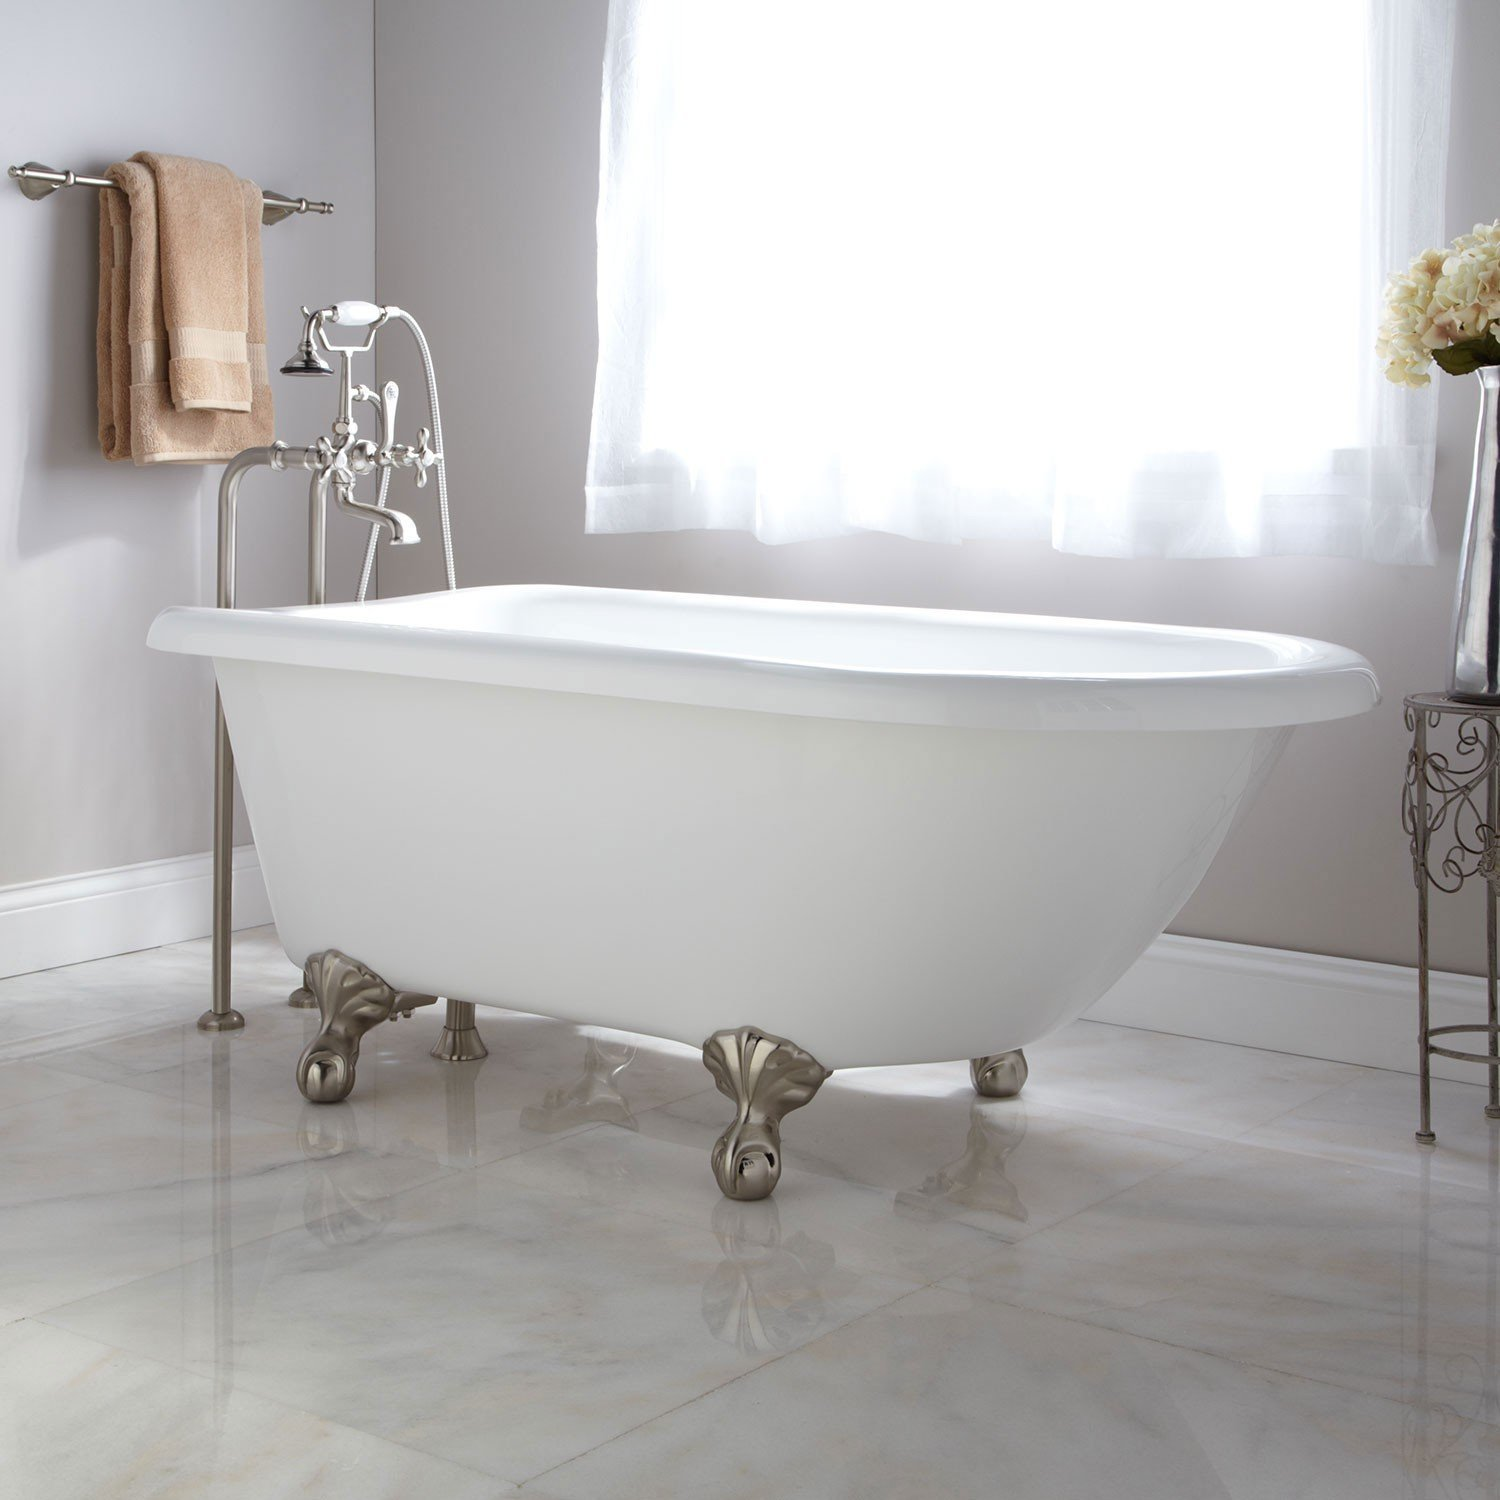 55 inch clawfoot tub. Naiture Acrylic Clawfoot Tub From SH 20 Best Small Bathtubs To Buy In 2018